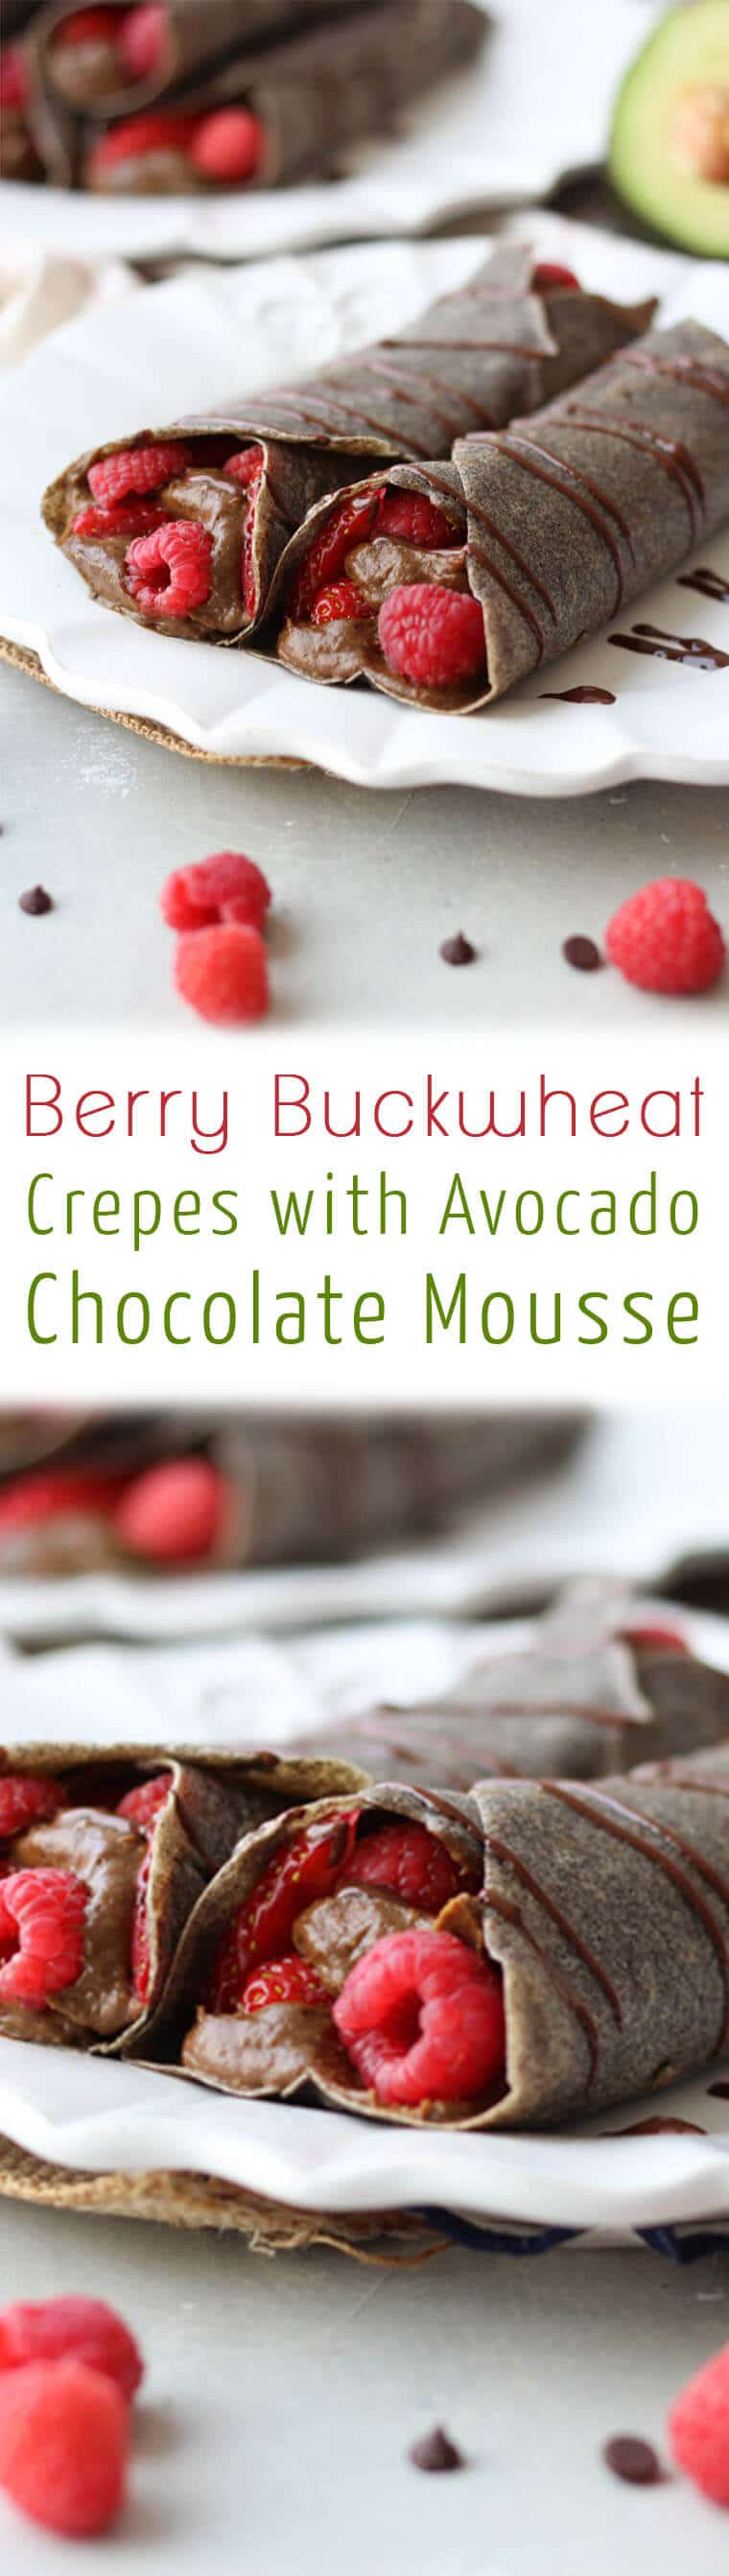 "A pinterest image of buckwheat crepes with the overlay text ""Berry Buckwheat Crepes with Avocado Chocolate Mousse.\"""